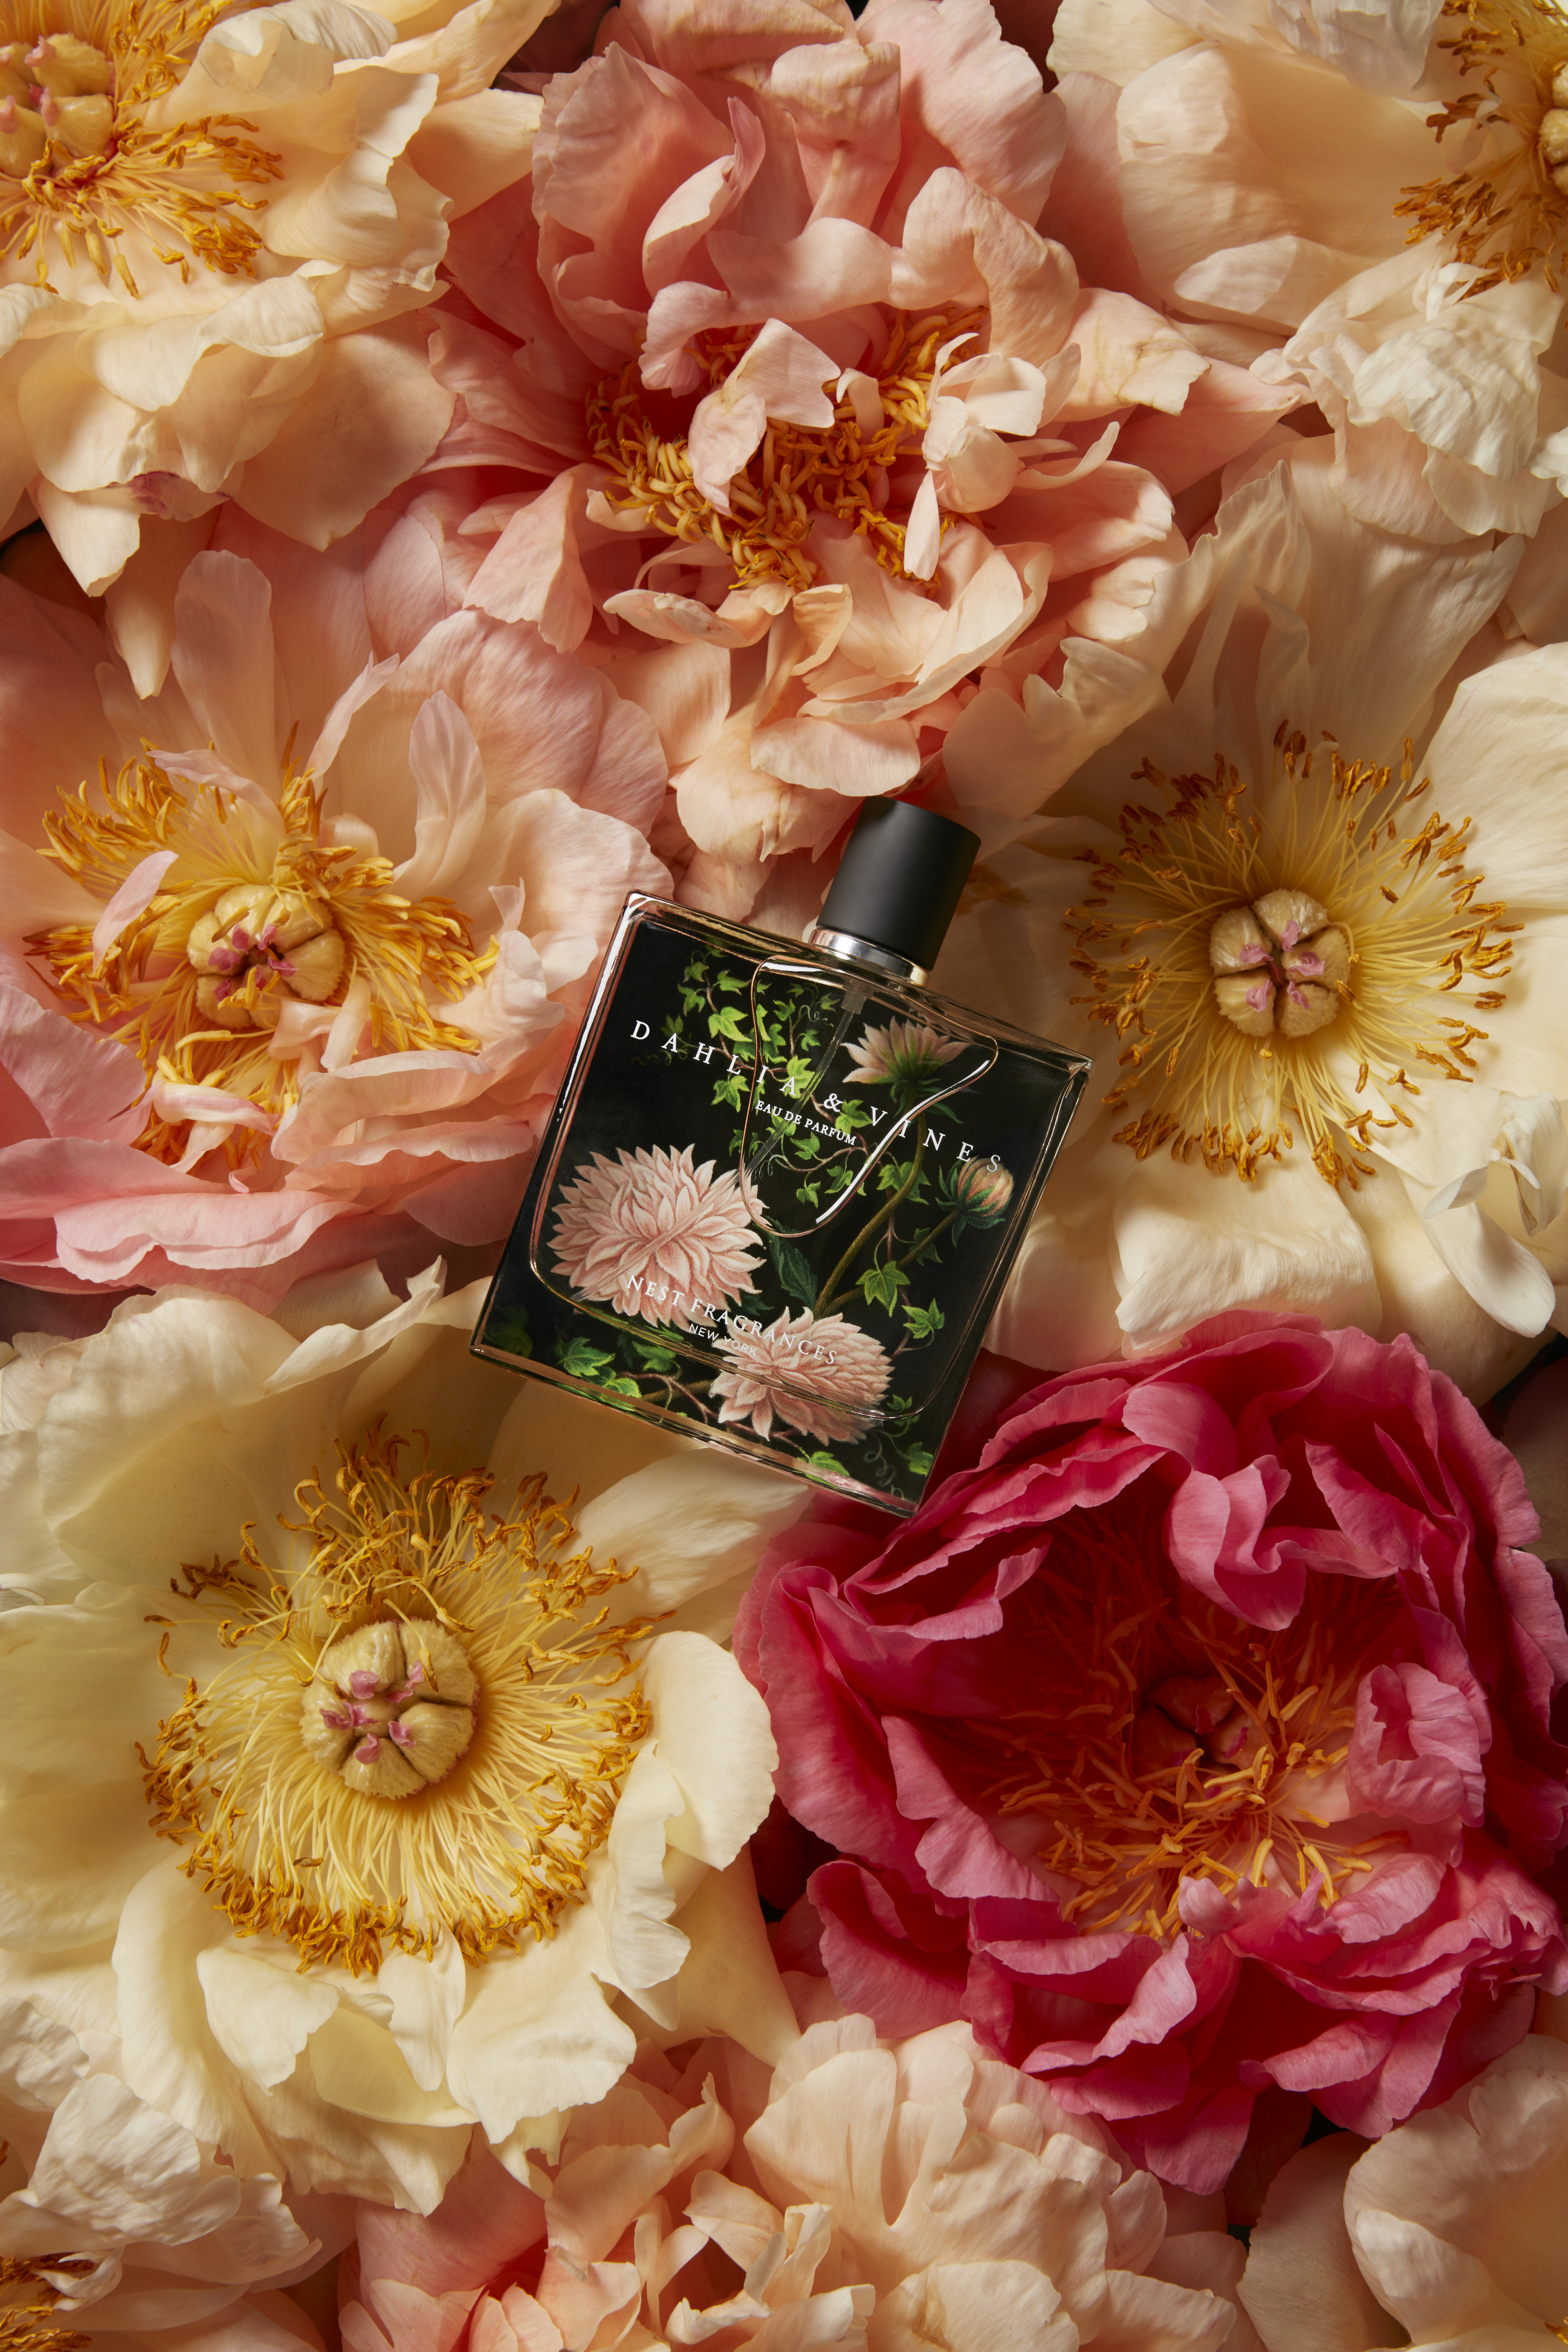 Fall In Love With Dahlia & Vines by Nest Fragrances